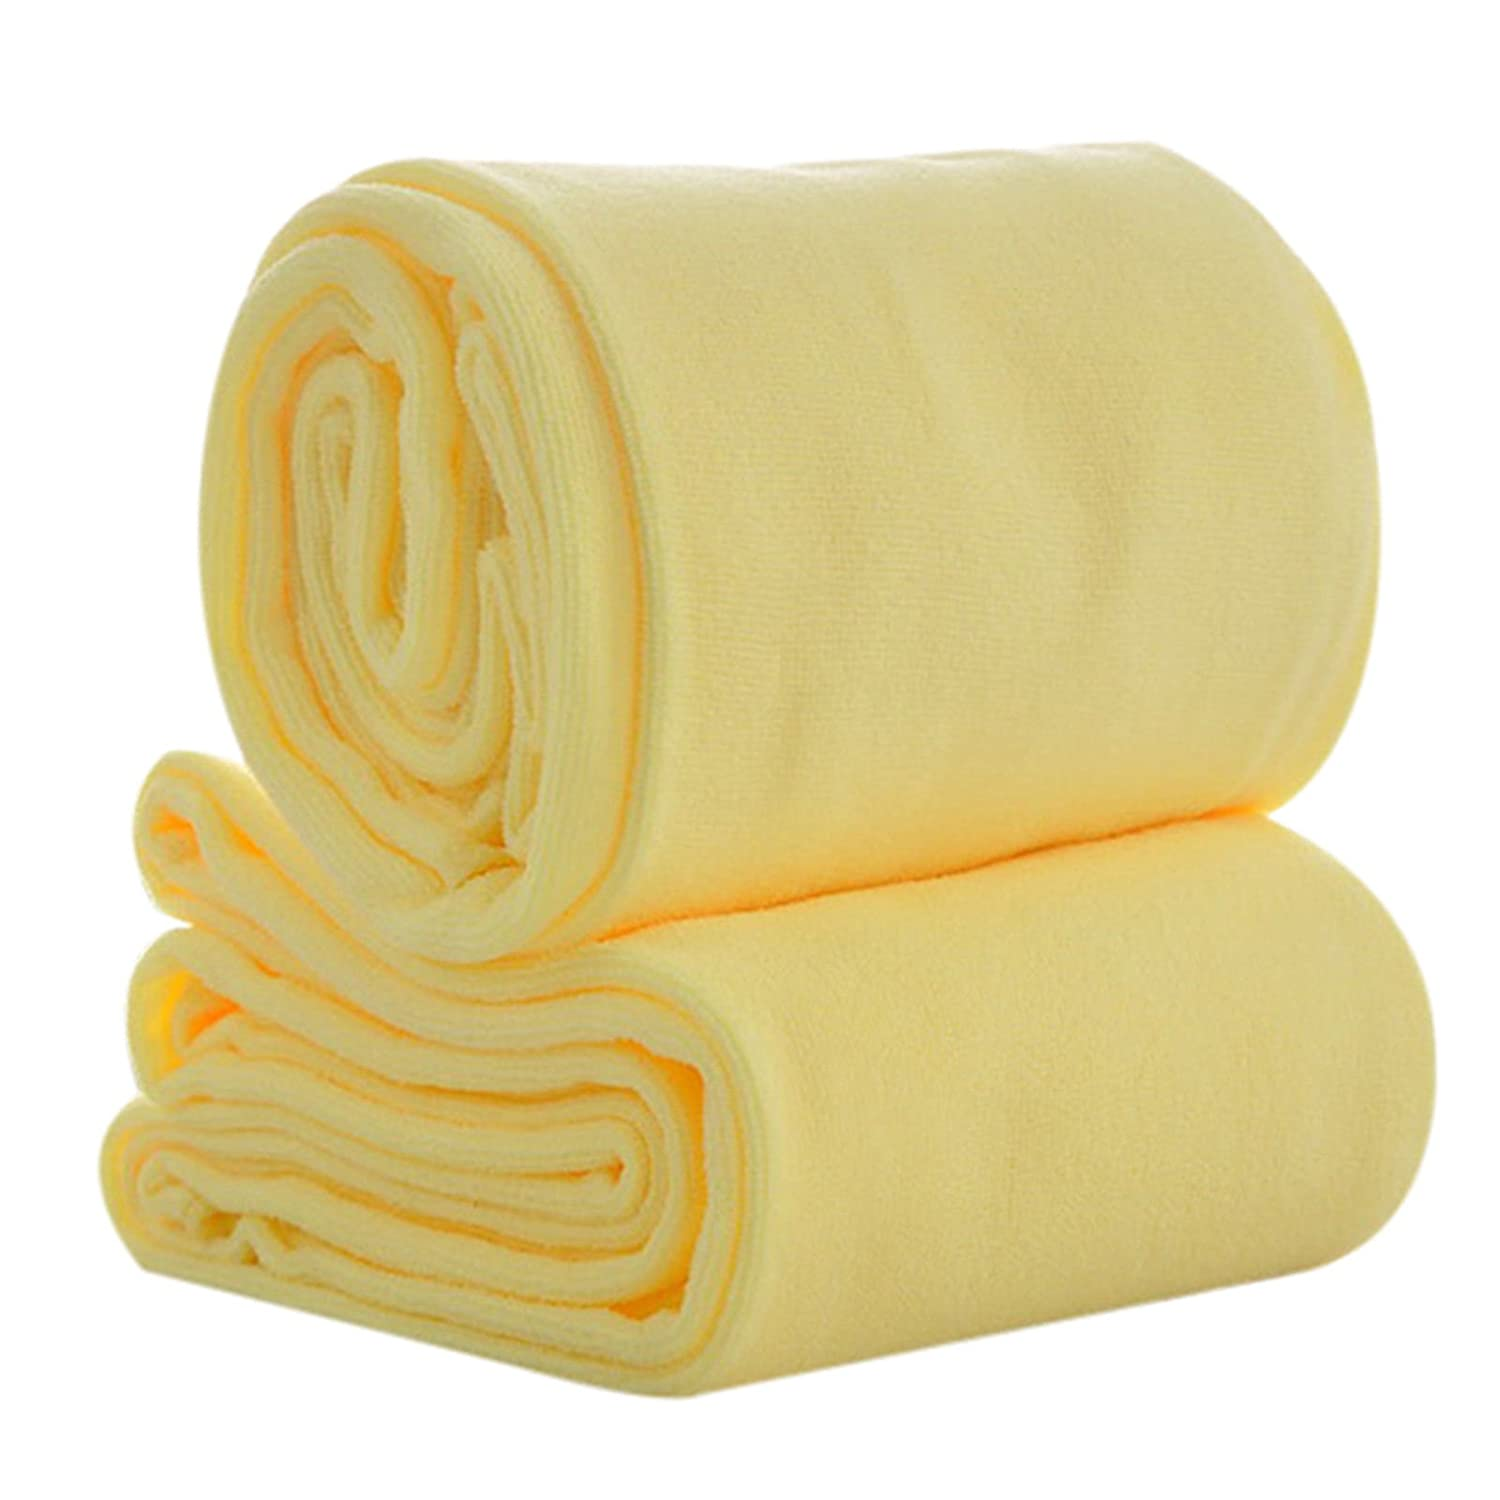 Amazon.com: Fast Dry Towel Absorbent Microfiber Beach Bath Washcloth Shower Toallas de Baño (Yellow): Home & Kitchen